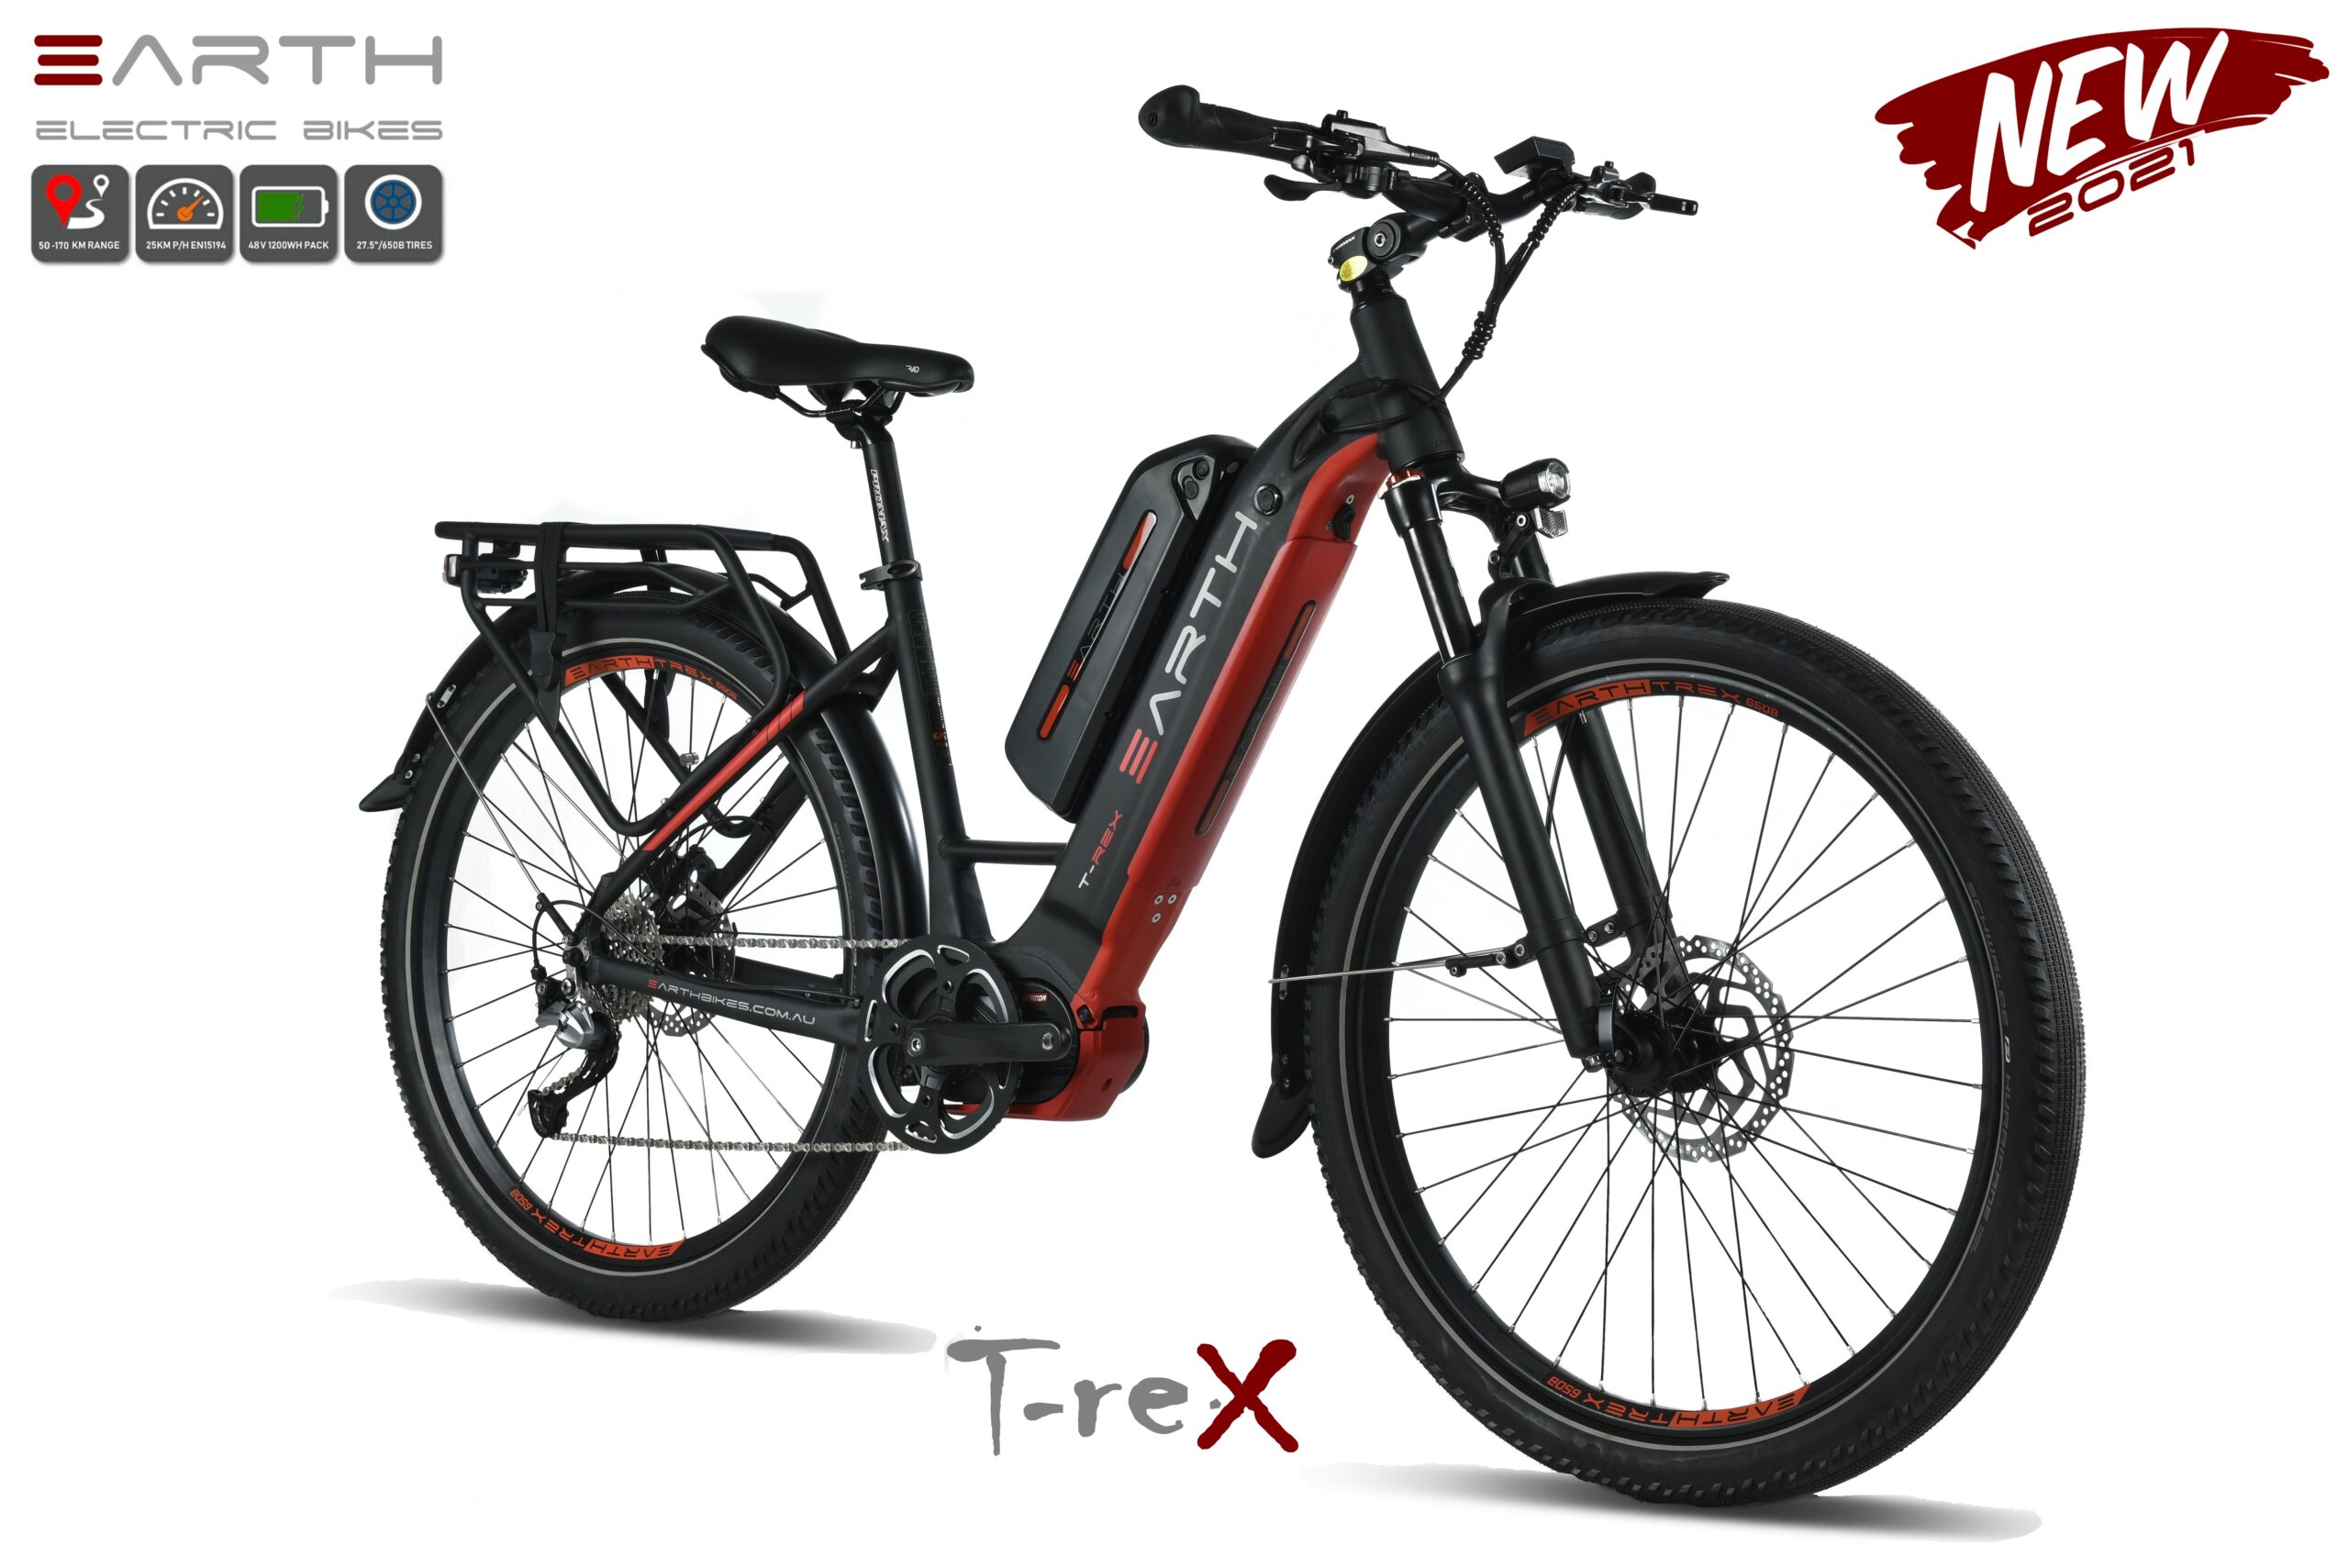 Earth T Rex Mixie Electric Bike Dual Battery Pack